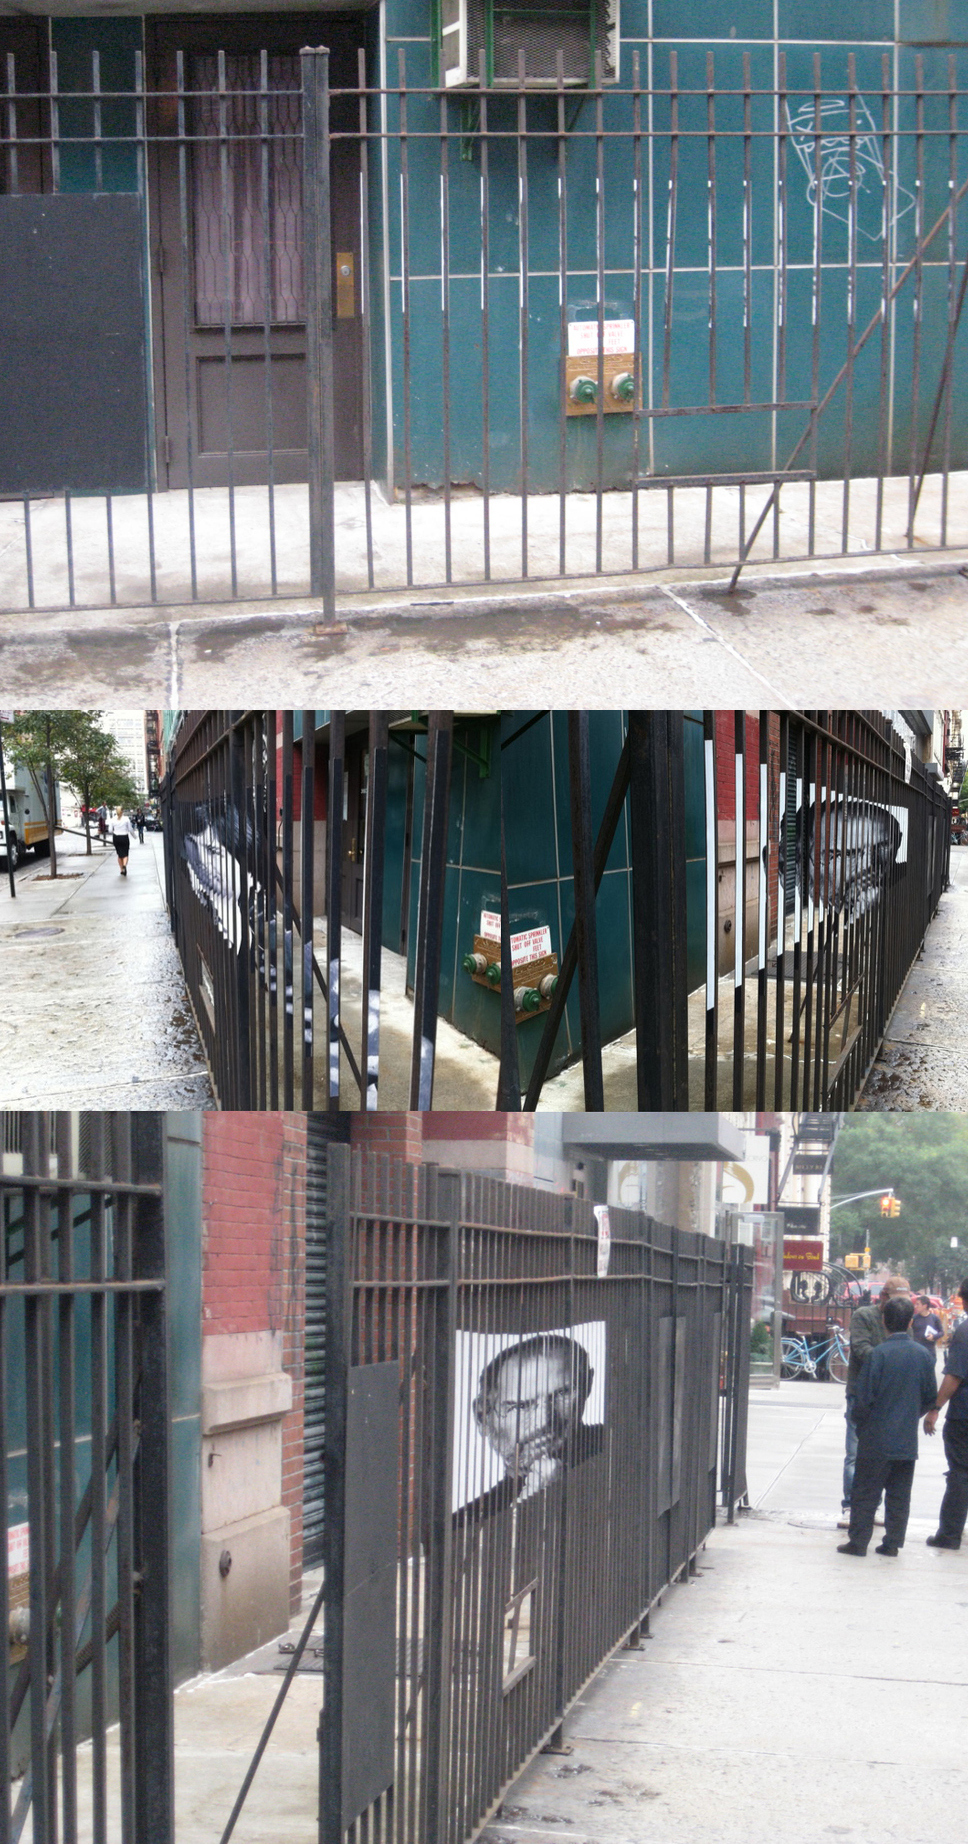 Awesome Steve Jobs Tribute On A Fence In New York City